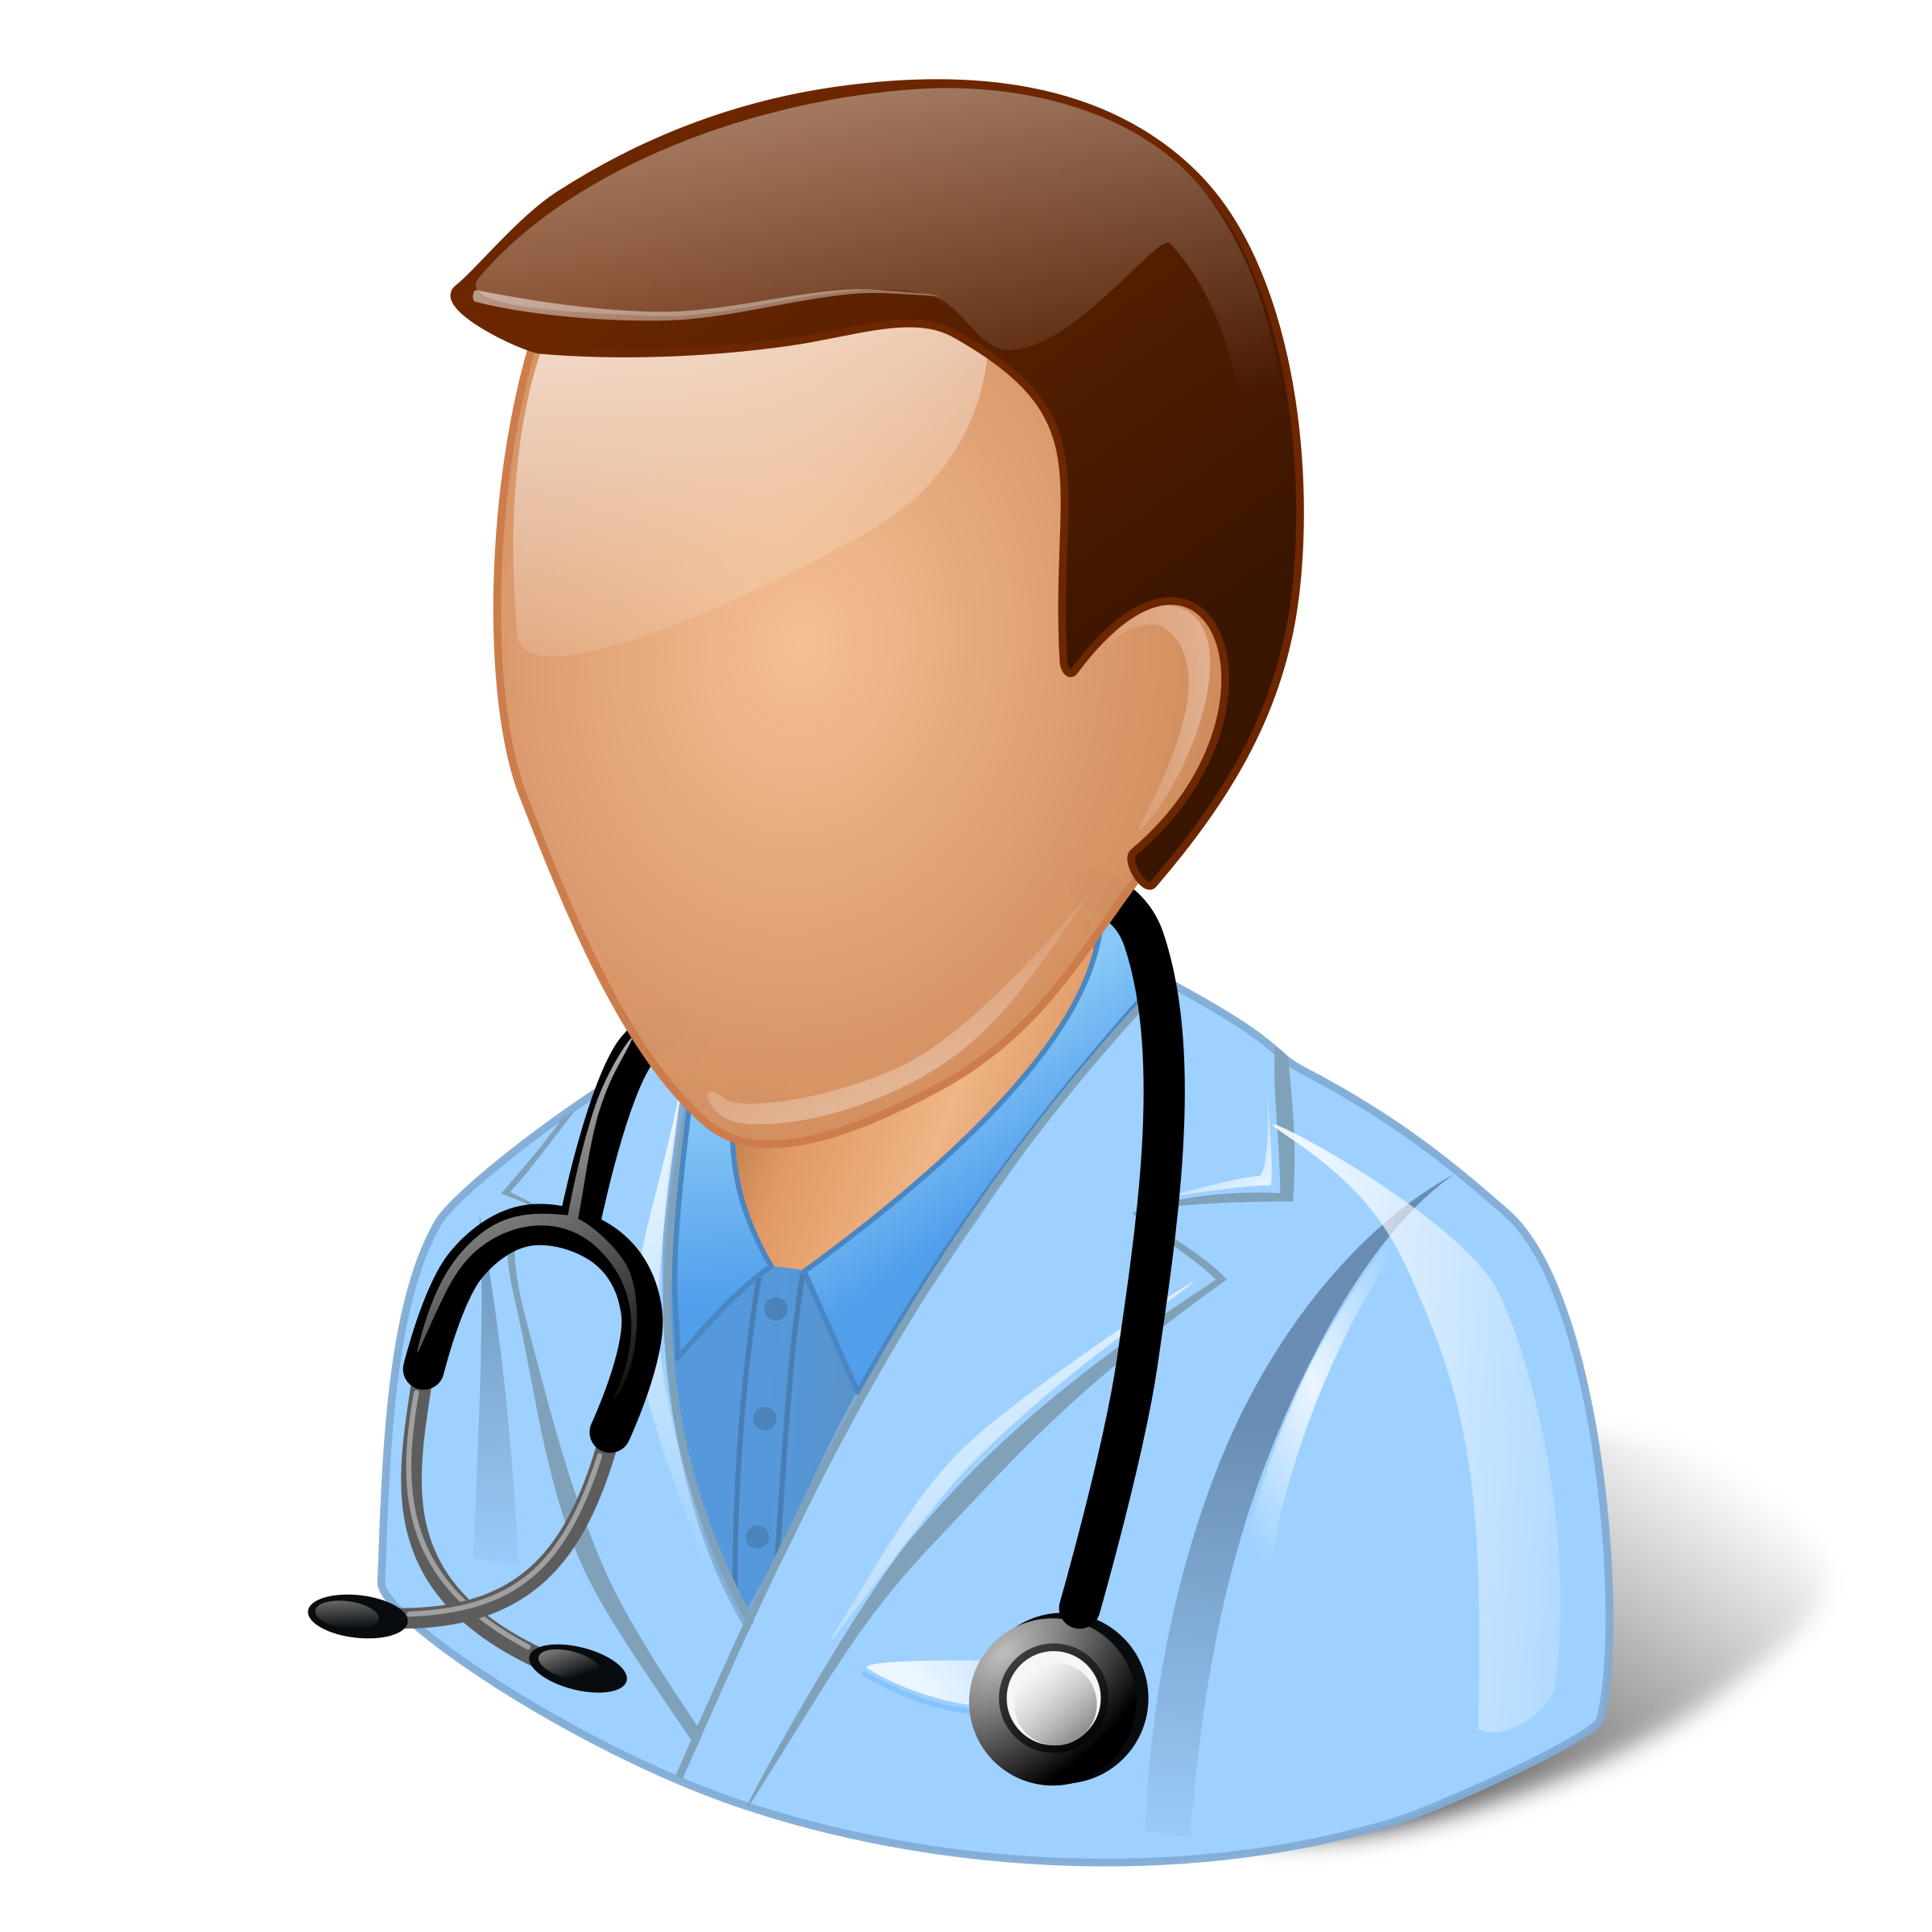 Physician Computer Icons Medicine Clip art.